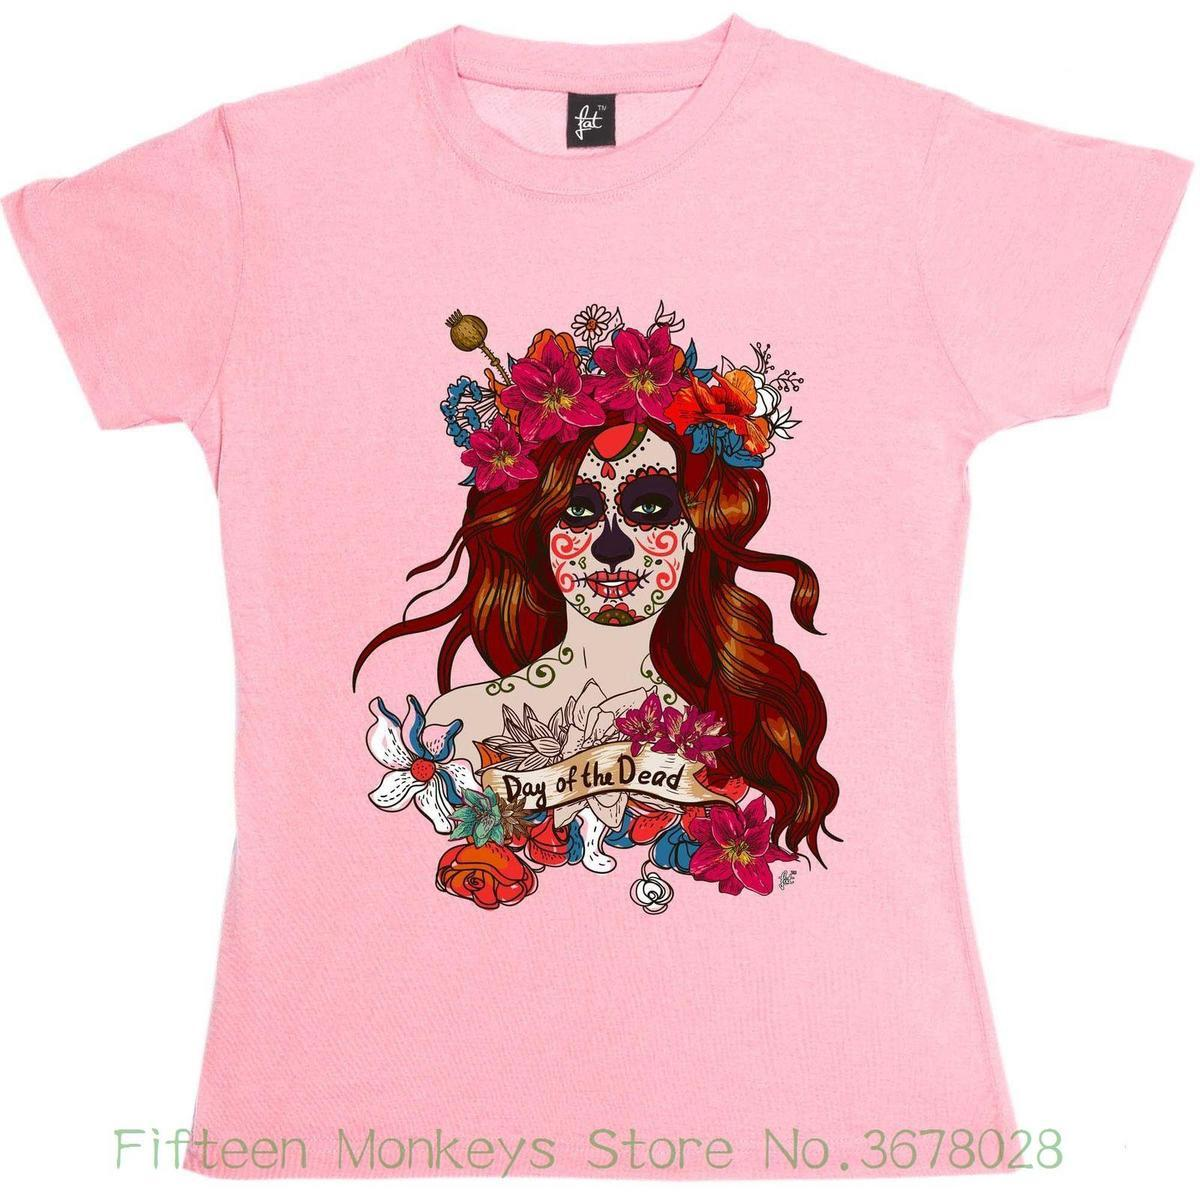 ef32b40c Women's Tee Day Of The Dead Mexican Sugar Skull Woman Womens Ladies T-shirt  Women Sexy Tees